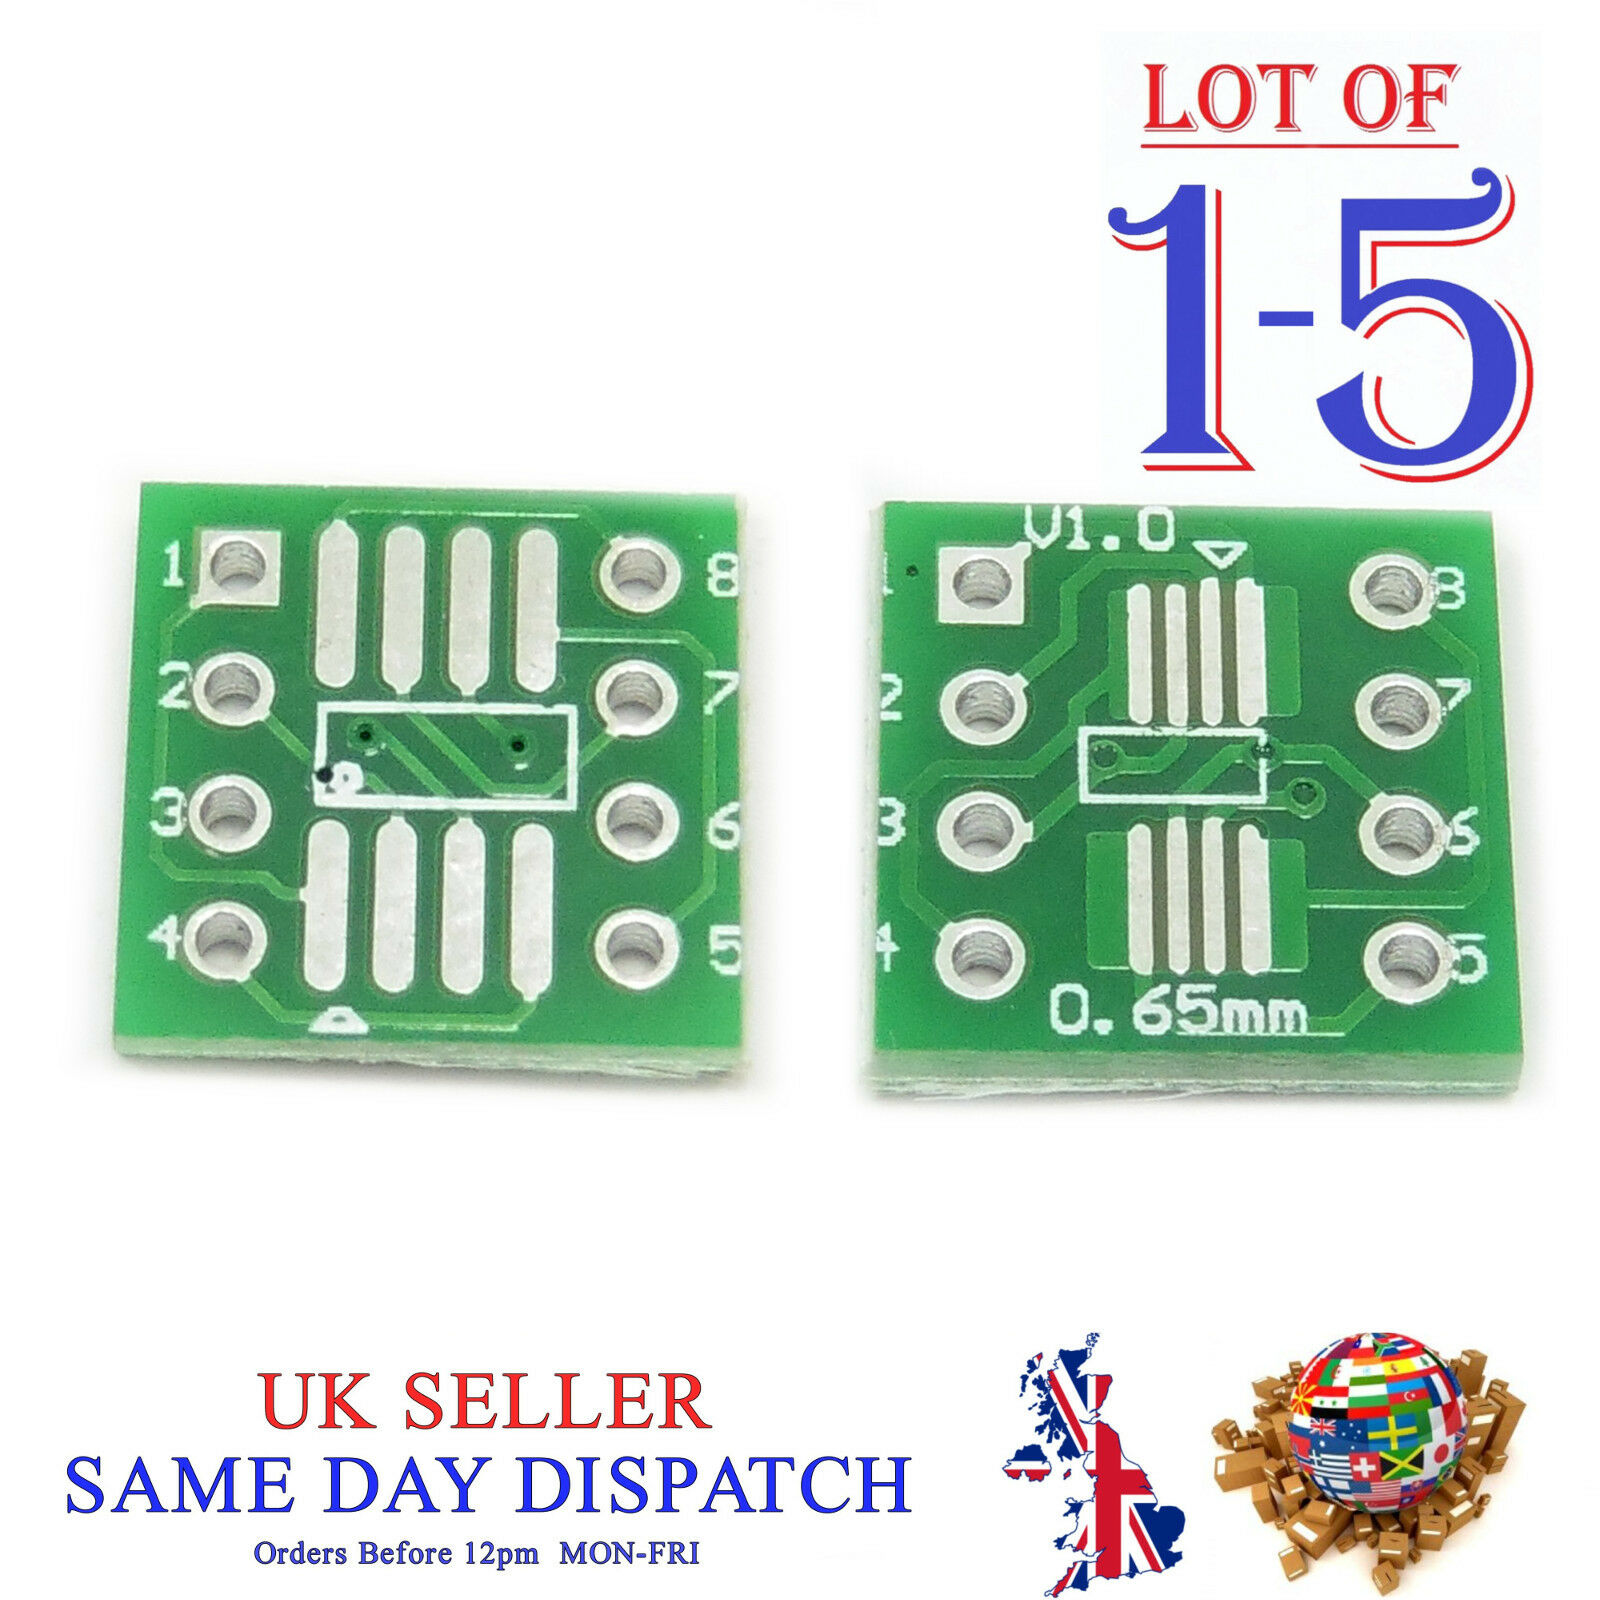 Pcb Sop8 So8 Soic8 Tssop8 Msop8 To Dip8 Converter Board Smd Adapter 3m Small Outline Integrated Circuit Test Clips Sotc8 1 Of 3free Shipping